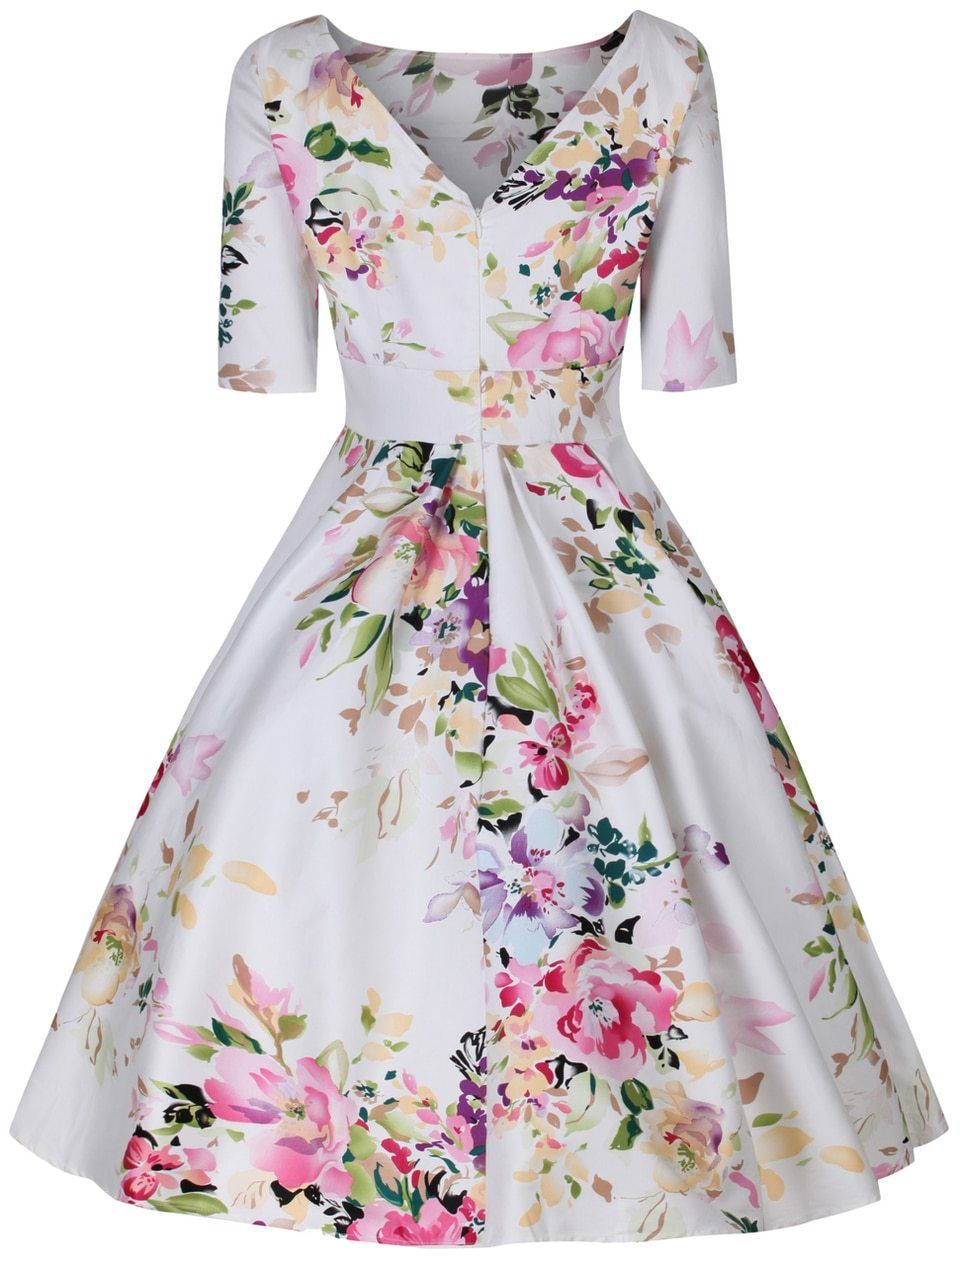 9be062b922fc Liana White and Pink Florals Flare Dress   Modern Val   Dresses ...